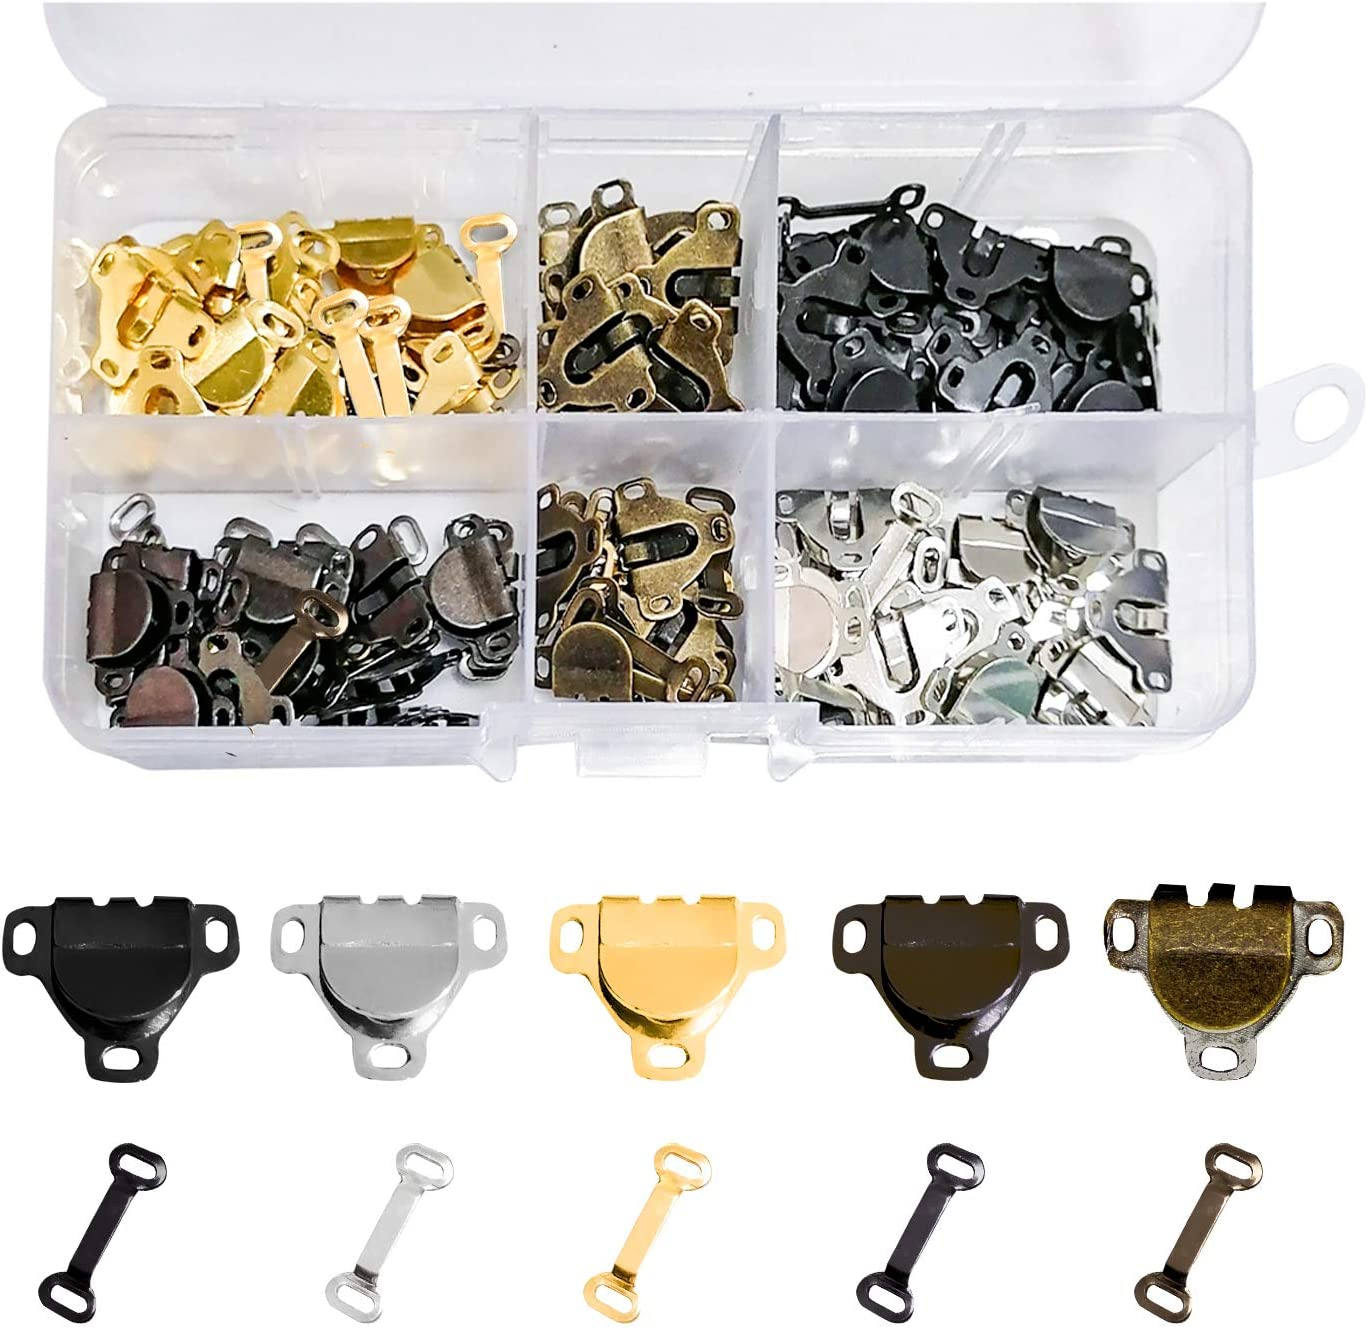 Eye Closure Replacement with box for Trousers Skirt Dress Bra Sewing DIY Craft 5 Colors Witlans 75 Pairs Sewing Hooks and Eyes Closure Set